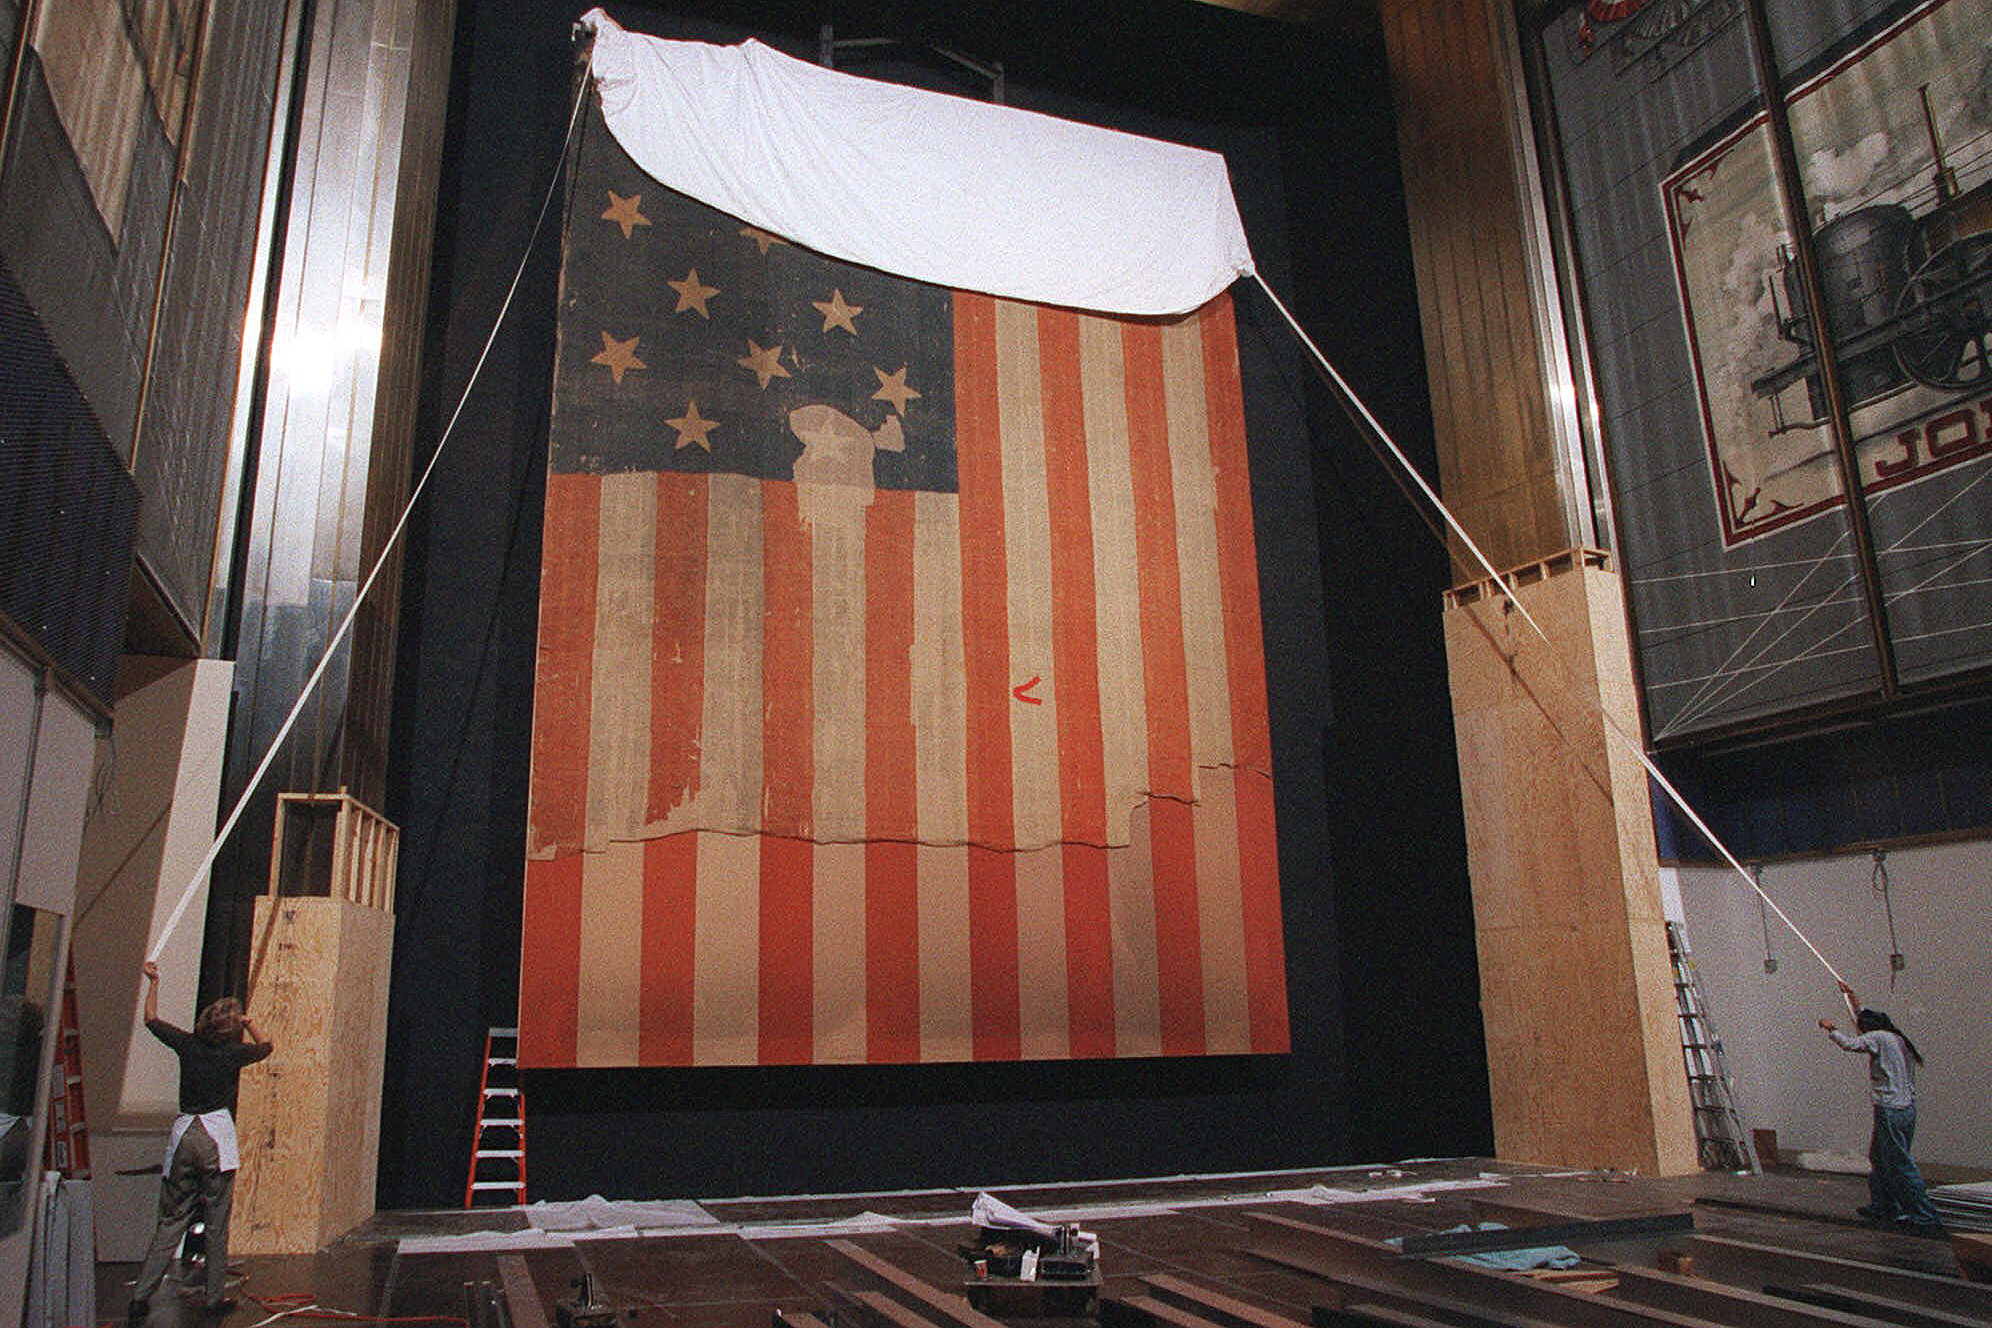 In this Nov. 20, 1998 file photo, Workers at the Smithsonian's National Museum of American History in Washington cover the flag that inspired the Star Spangled Banner, prior to the flag's restoration.